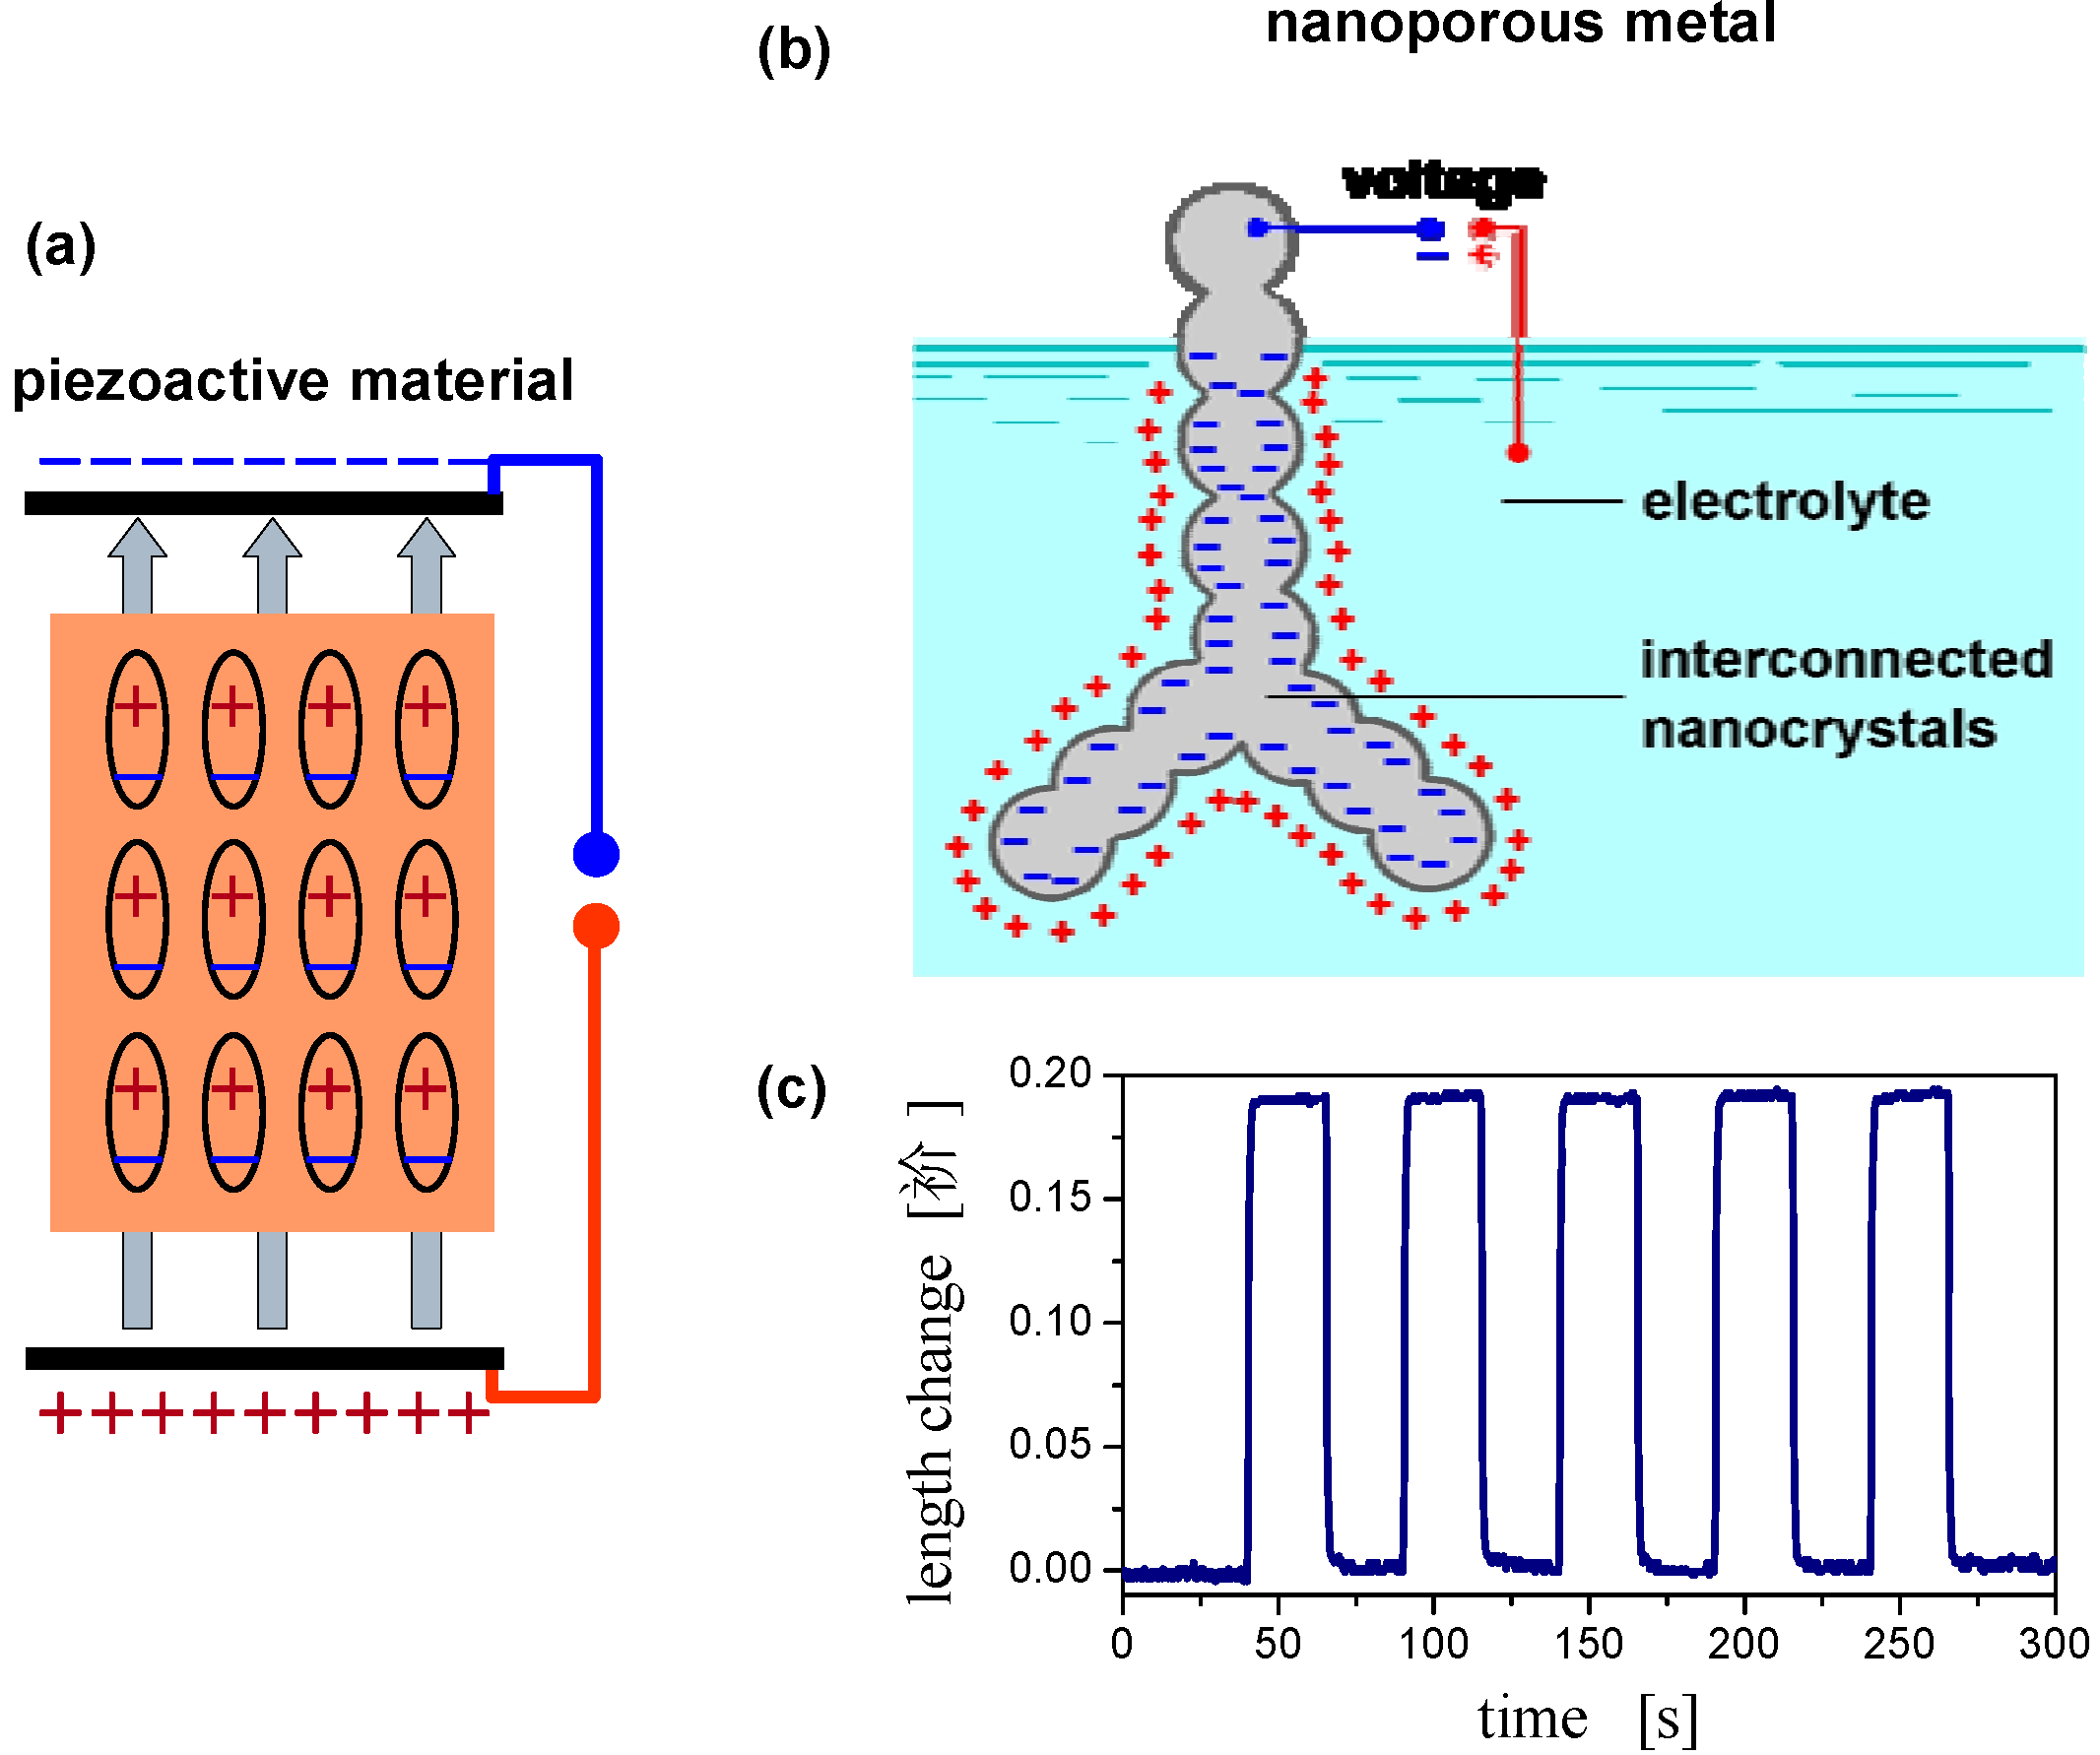 surface chemistry in nanoscale materials Sigma-aldrich presents a technical article on changing the landscape of environmental and energy research through novel nanoscale materials.